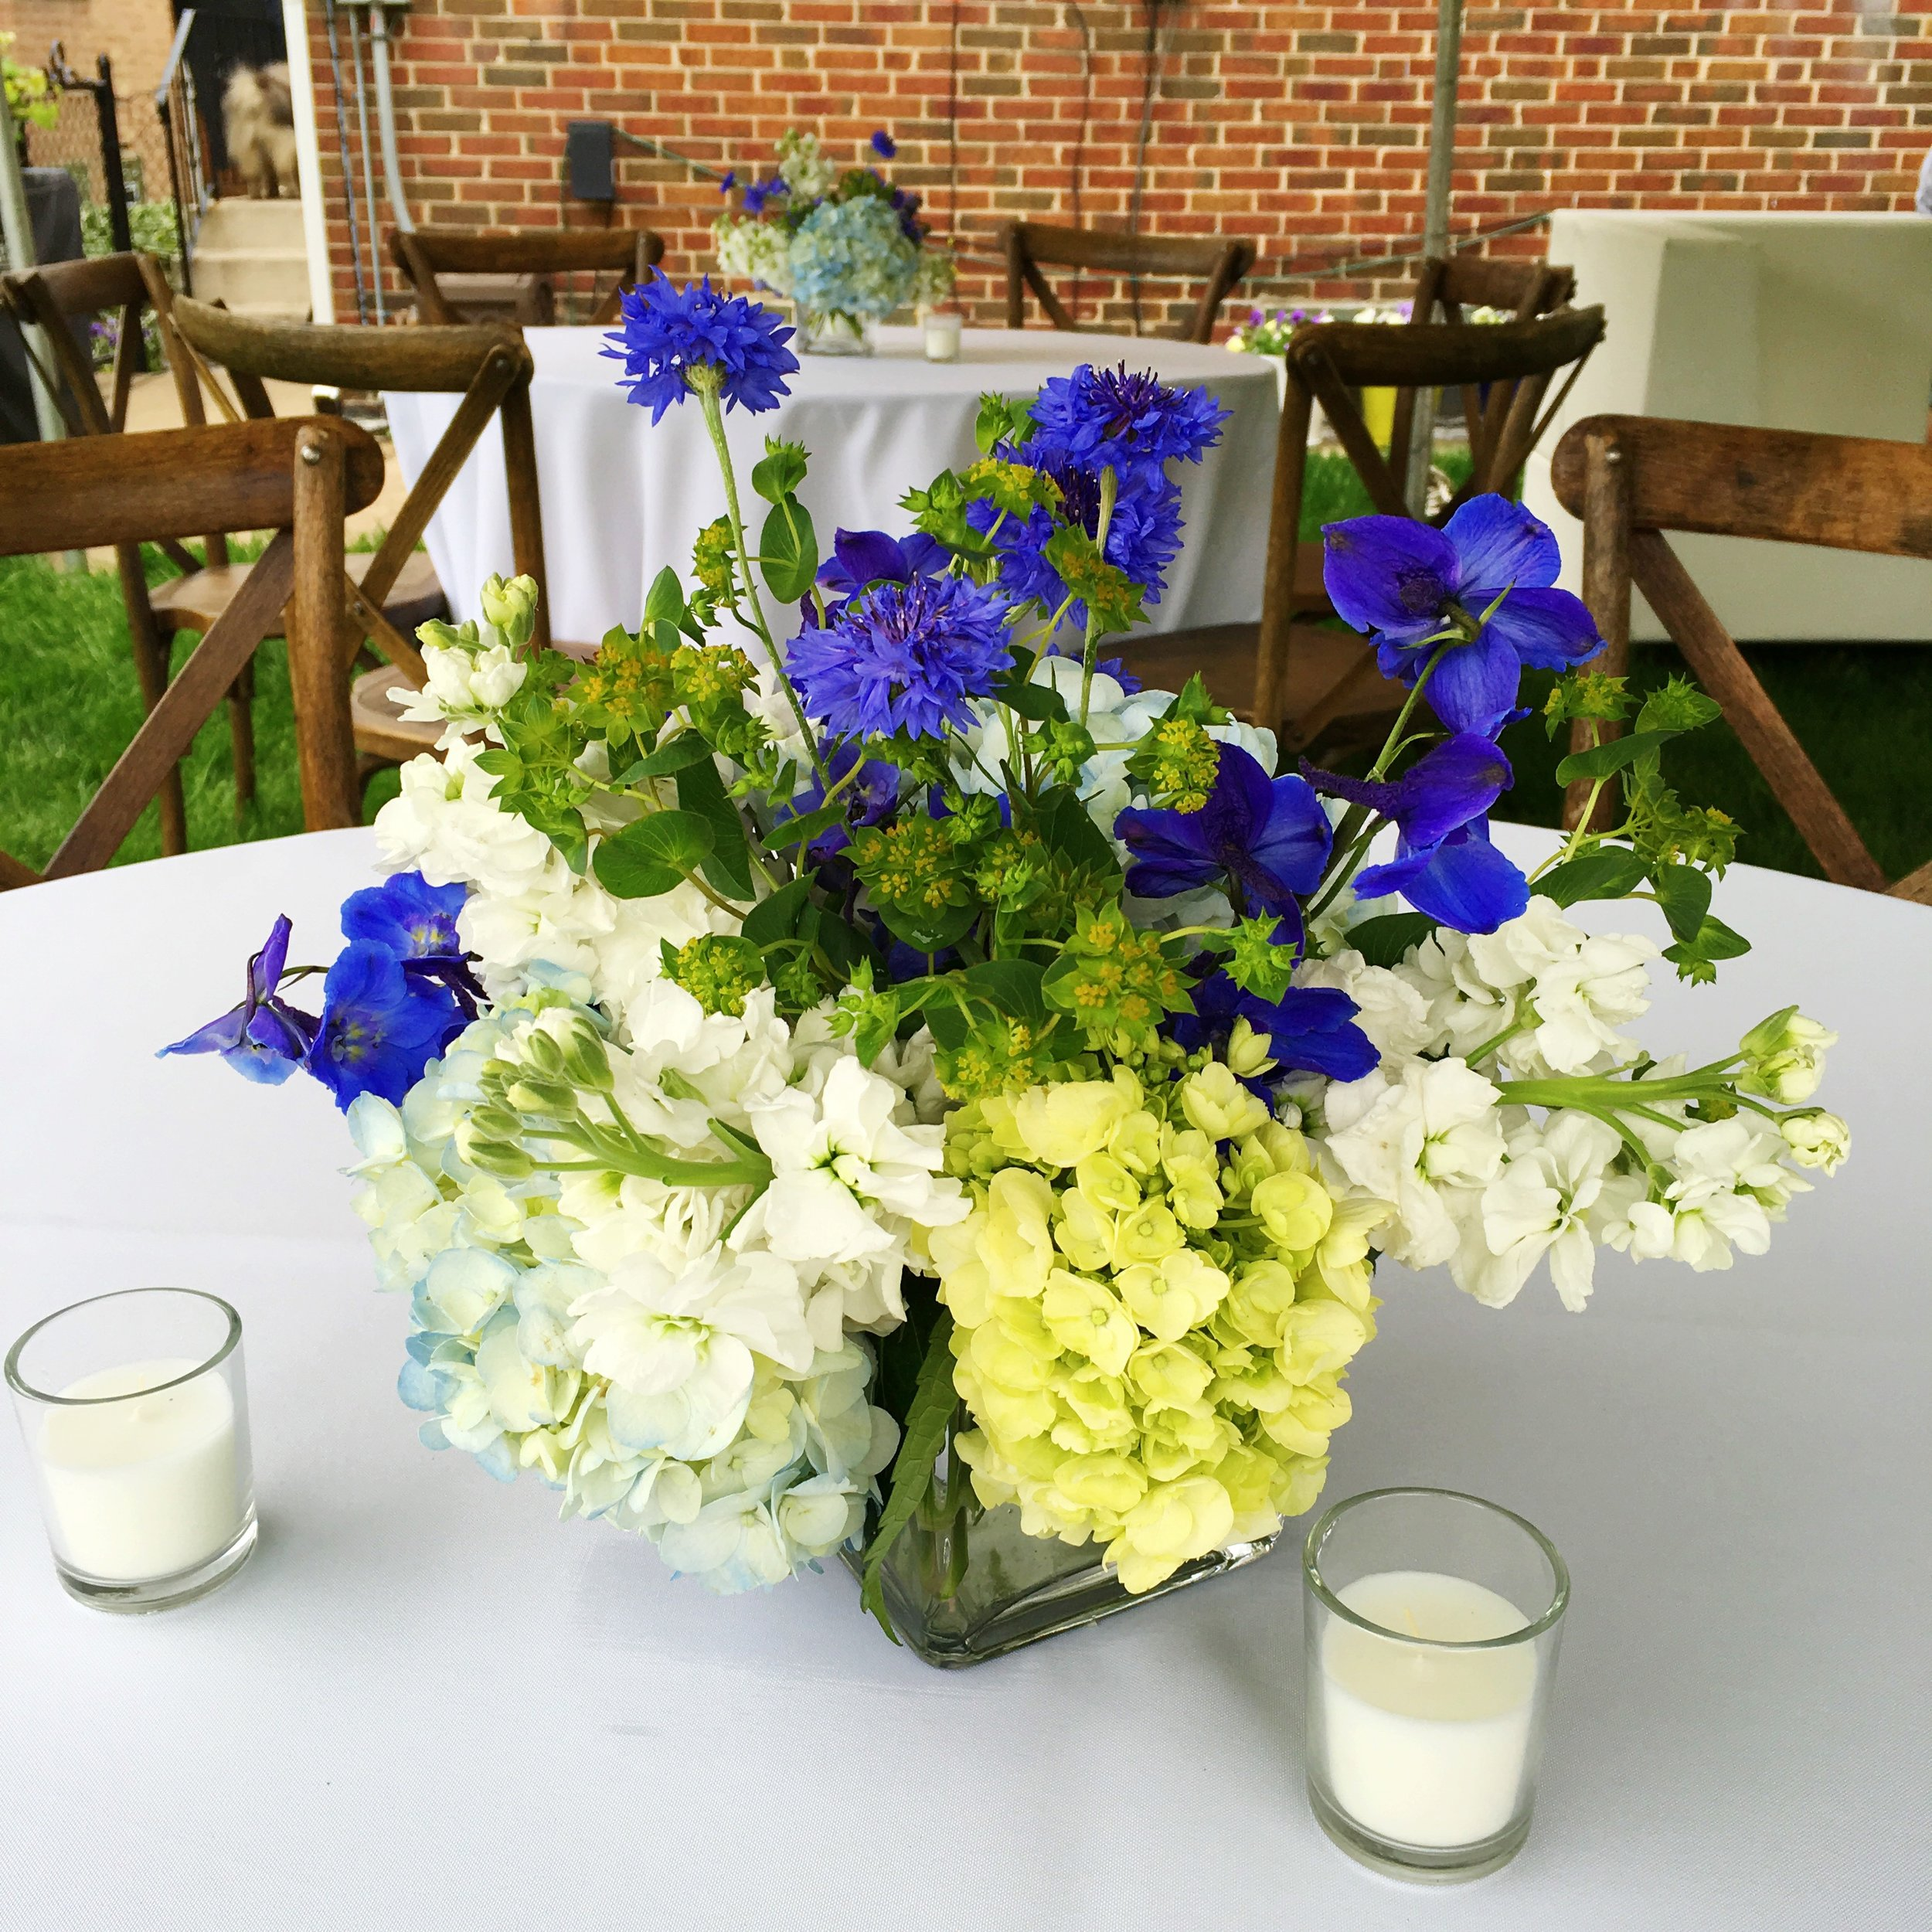 Graduation Party Flowers  Backyard Graduation Party Table Decor  Planning by Wrap It Up Parties